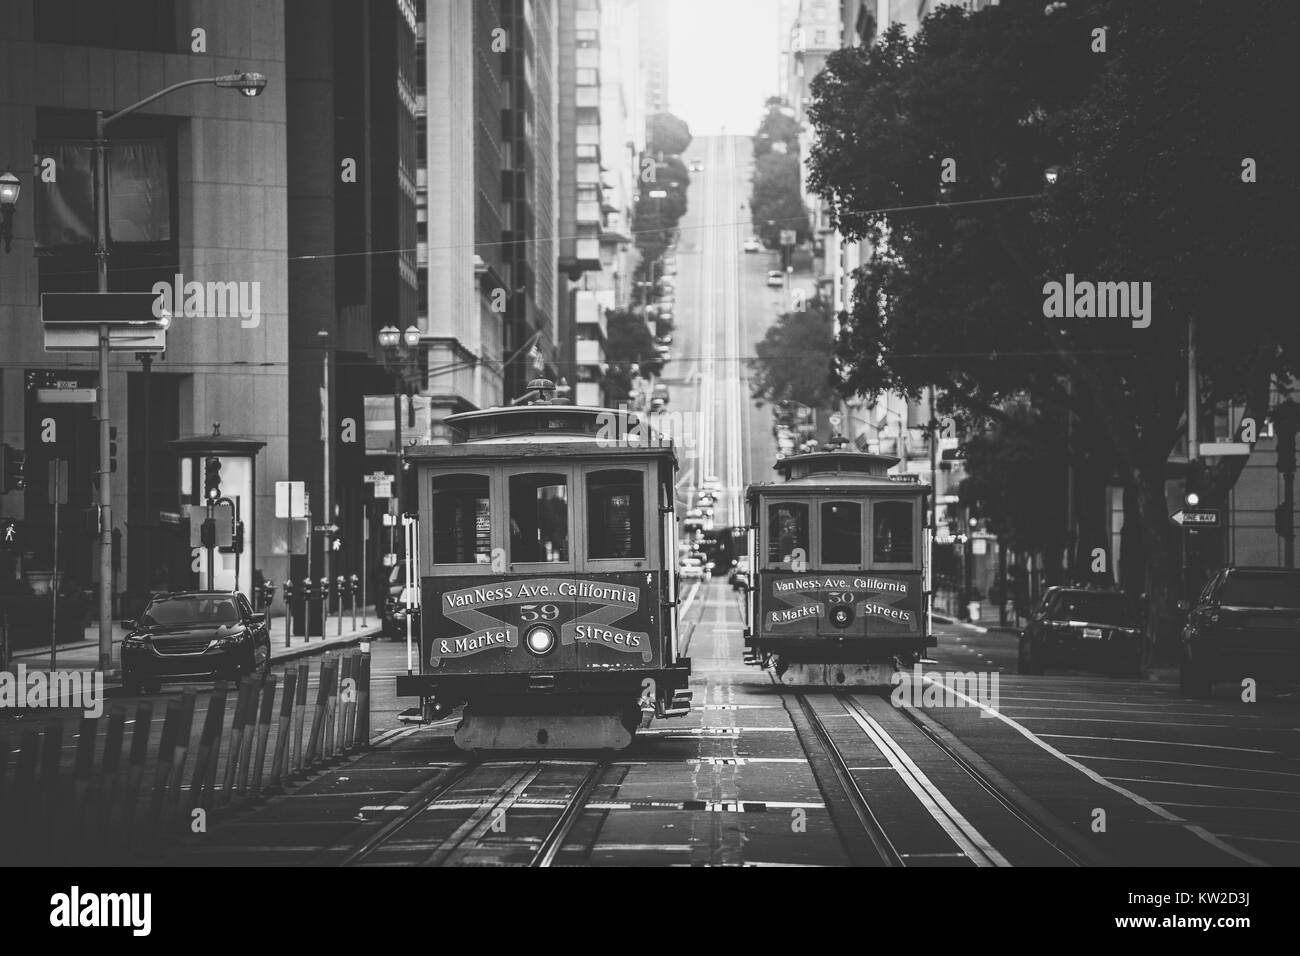 Classic view of historic traditional Cable Cars riding on famous California Street in beautiful morning light at - Stock Image